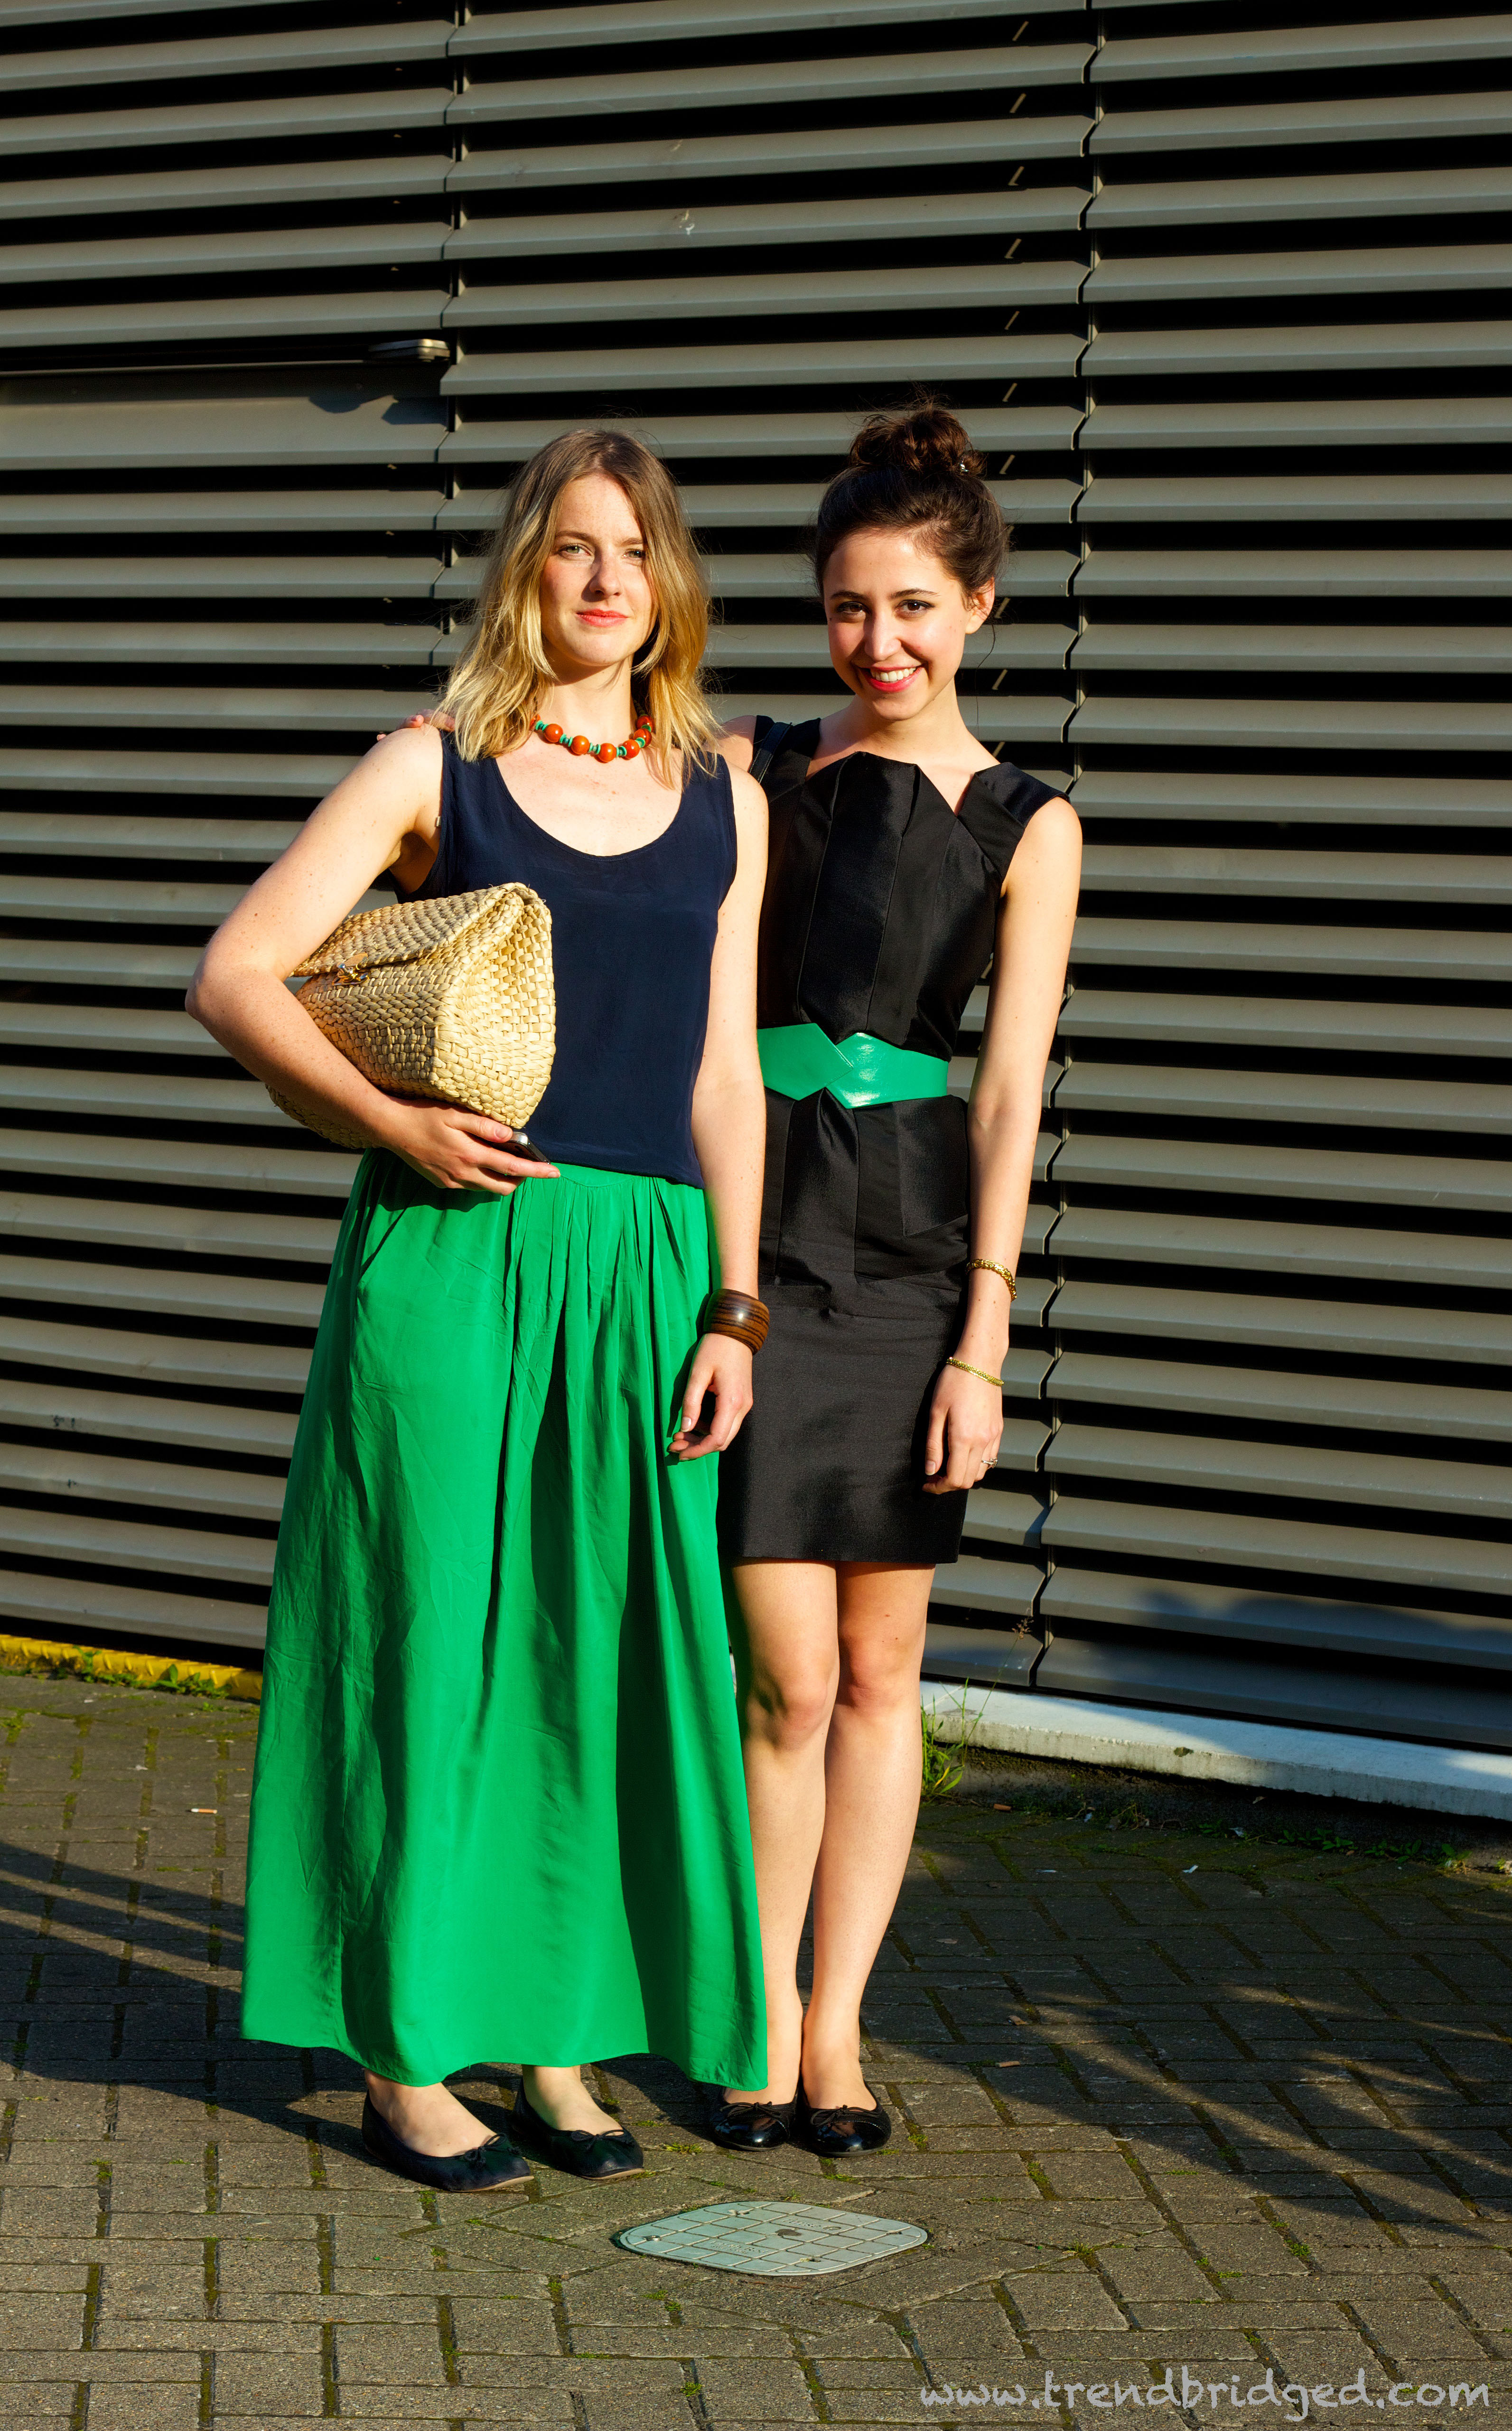 Green Skirt, Maxi Skirt, Tate Modern, Green an Black